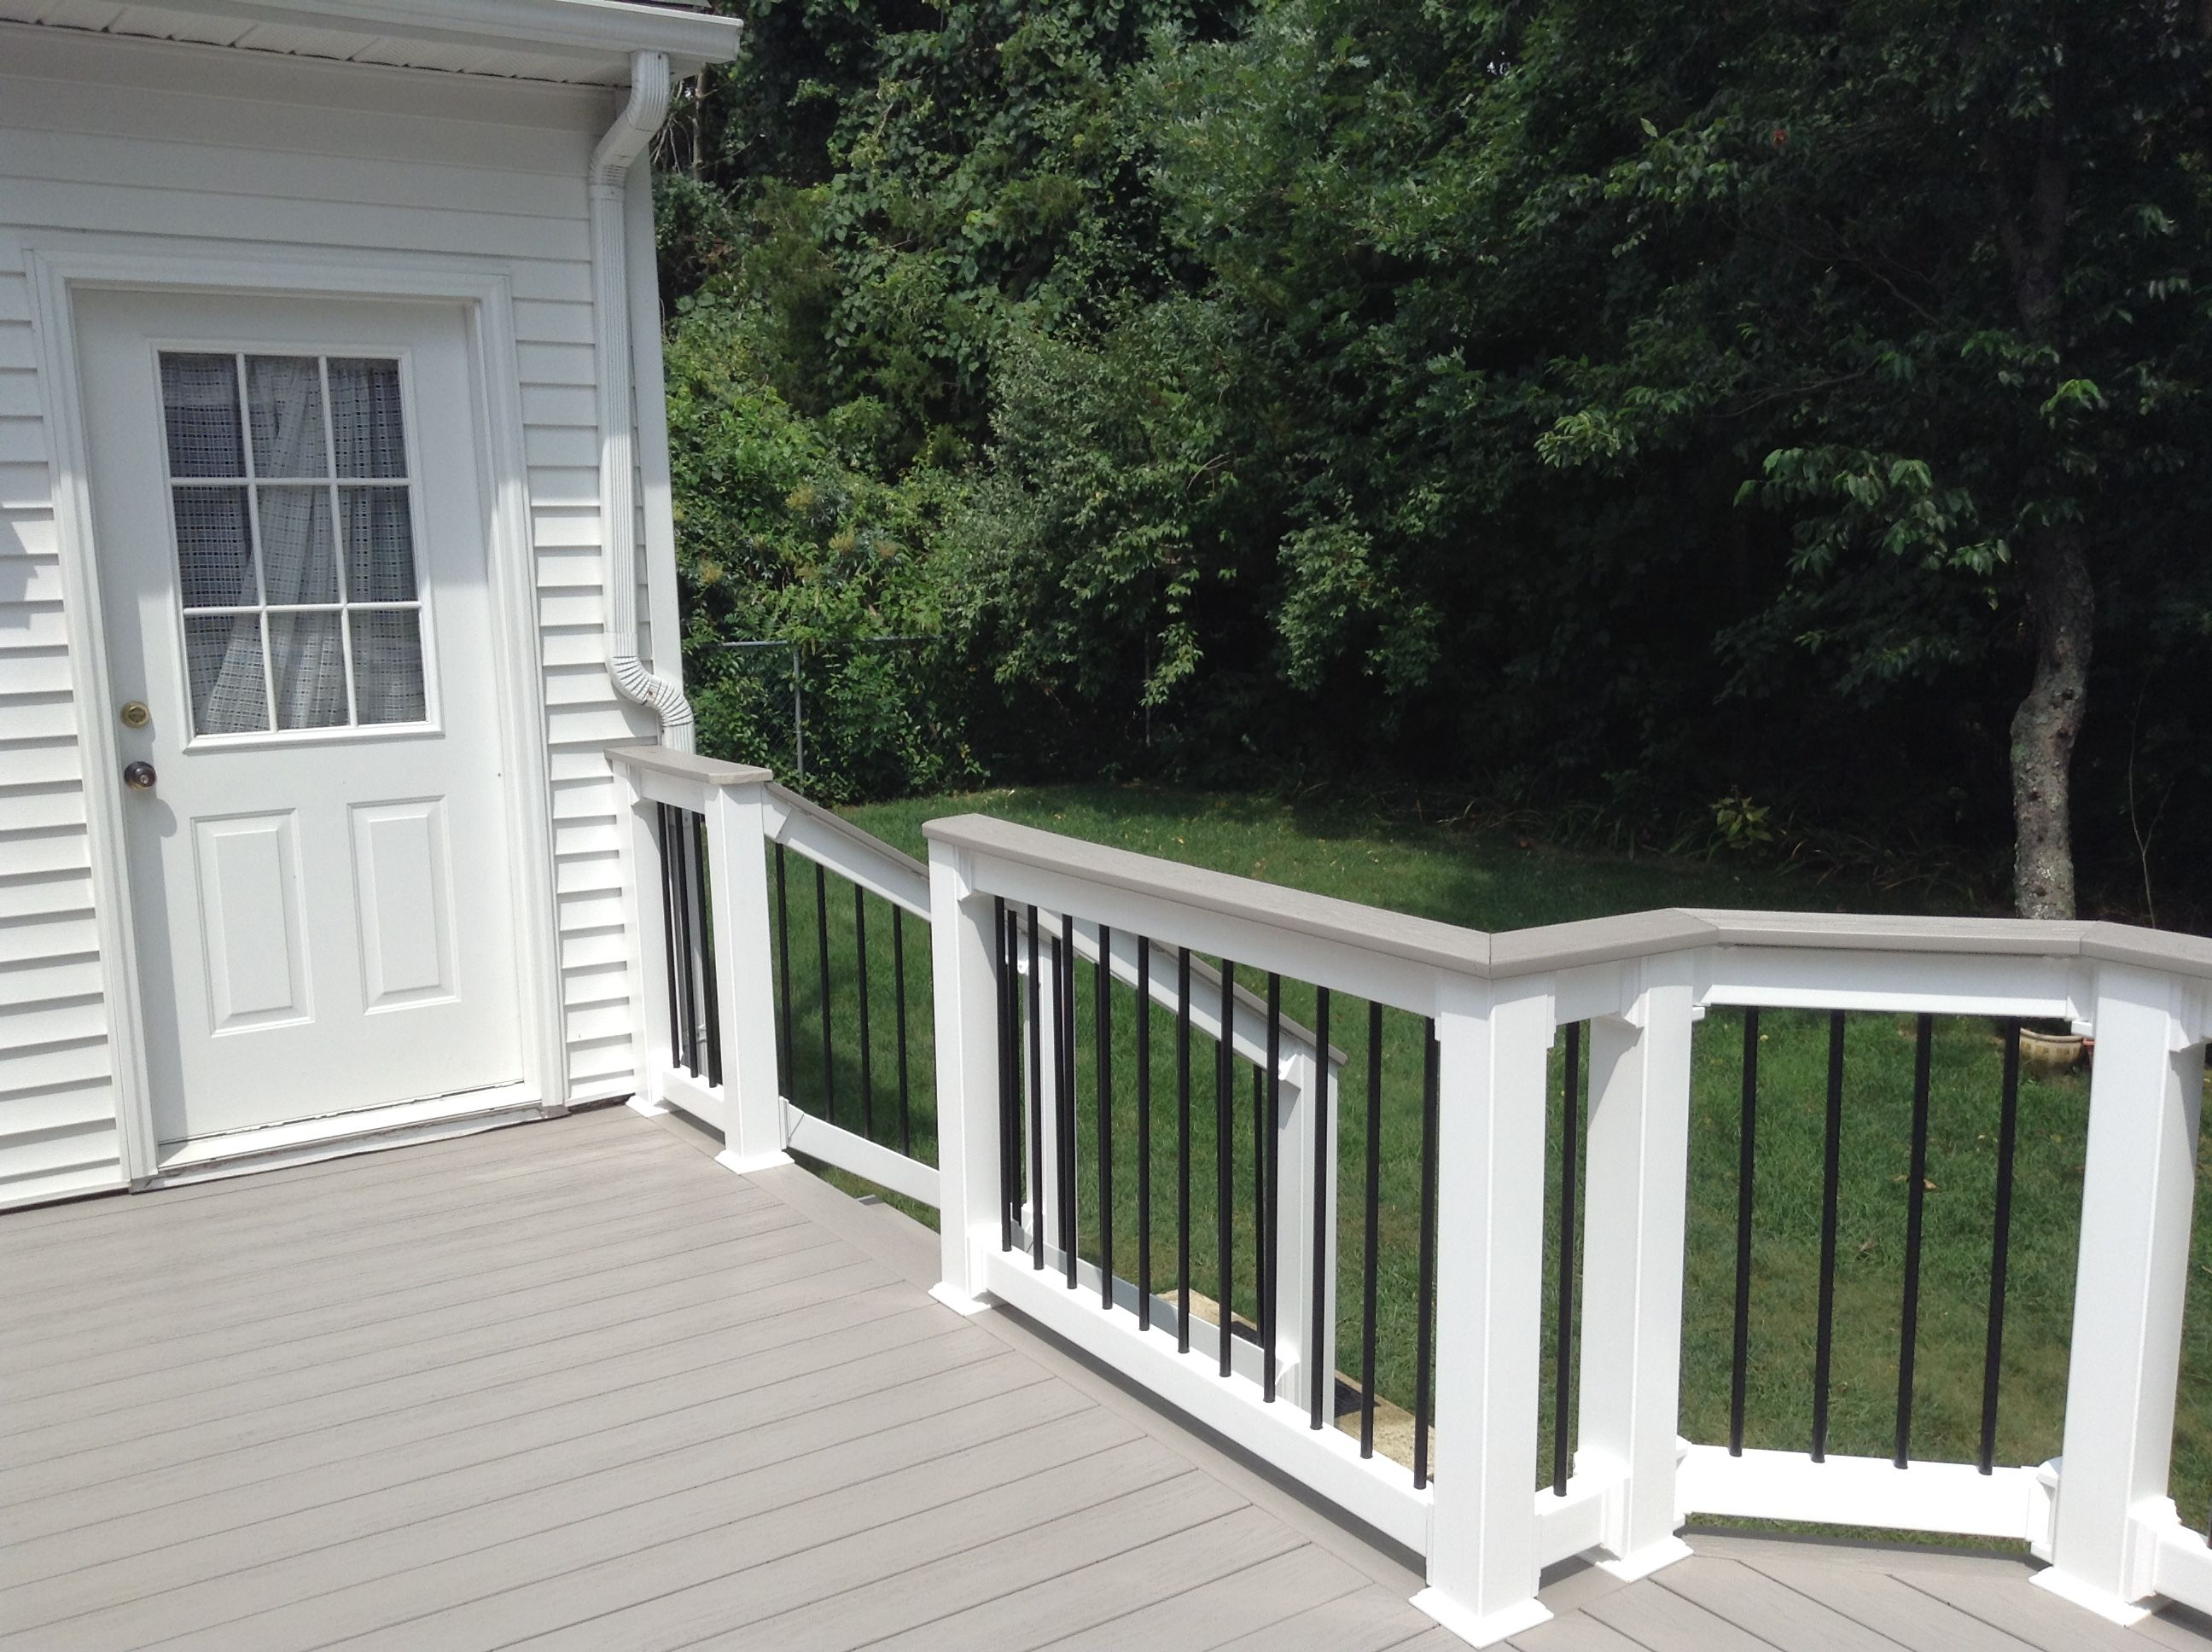 Ampro pvc light grey decking white vinyl deck over rail deck vinyl railing great railing provides quality decking fencing plus a whole lot more we can also install your new railing system fencing or deck baanklon Image collections